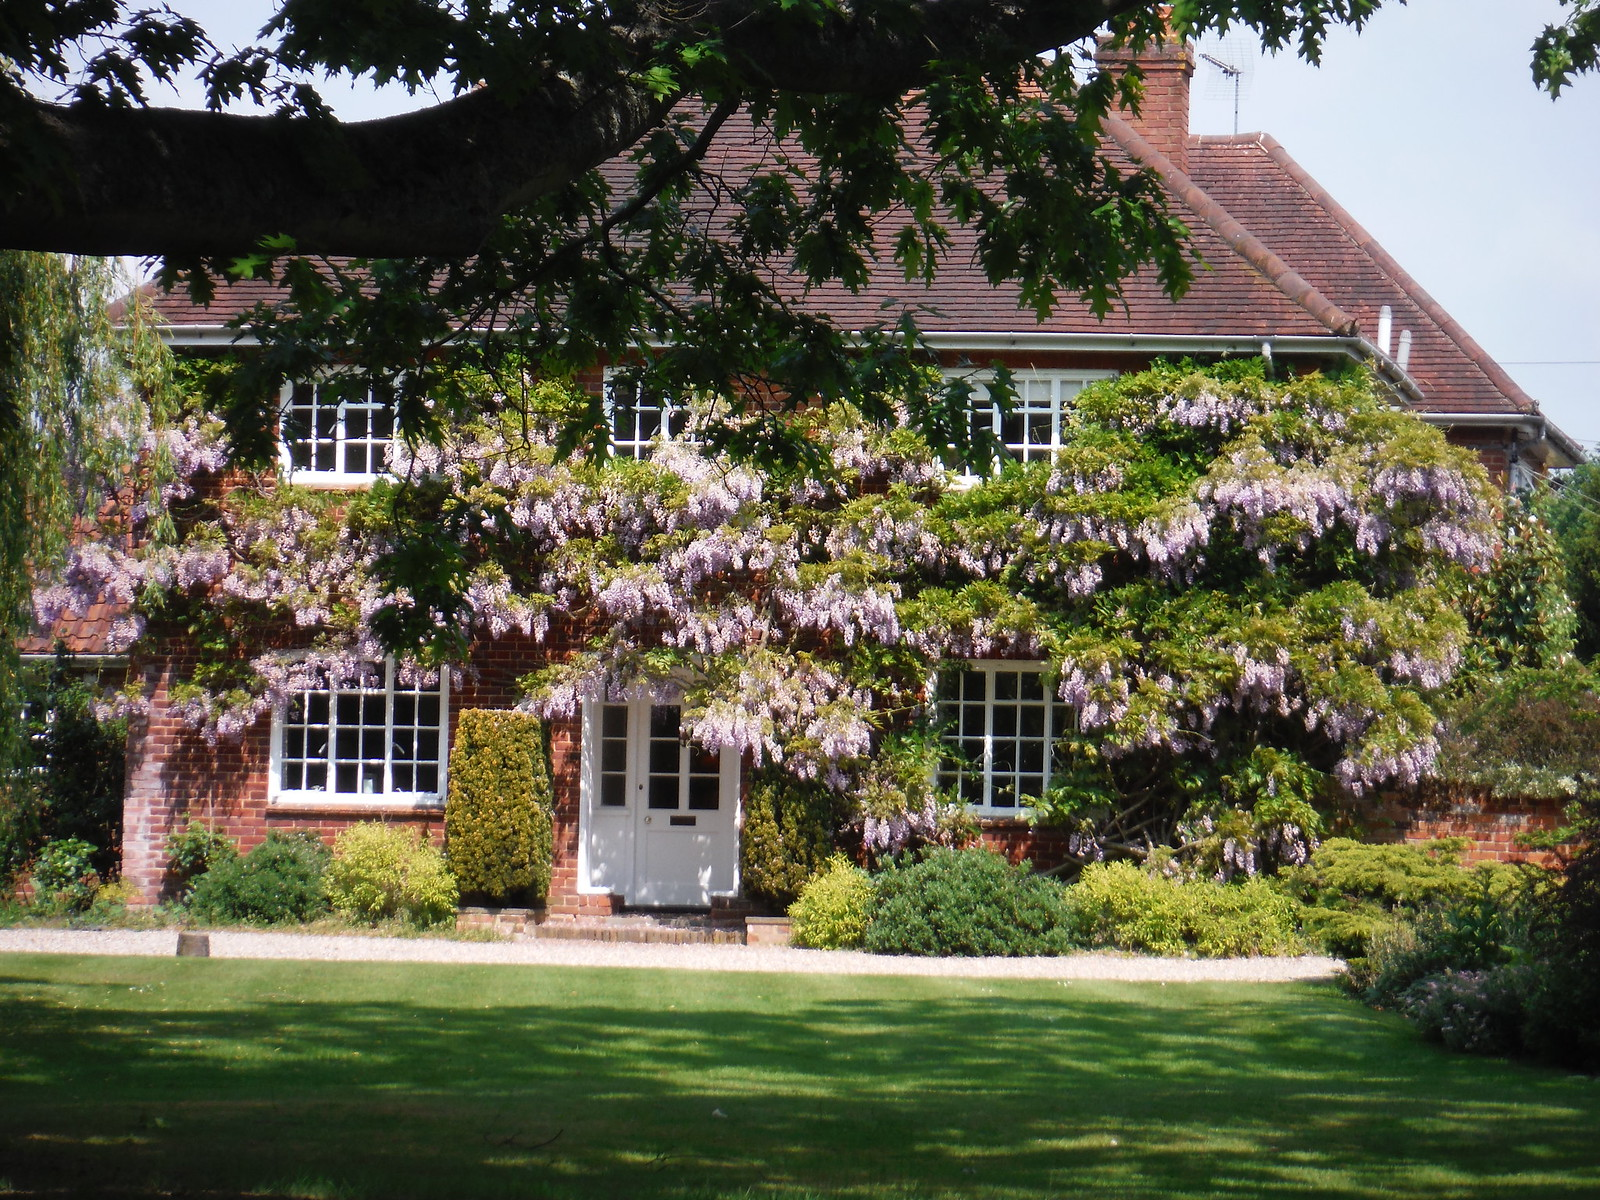 Wisteria-covered House in Stock SWC Walk 158 - Ingatestone to Battlesbridge or Wickford